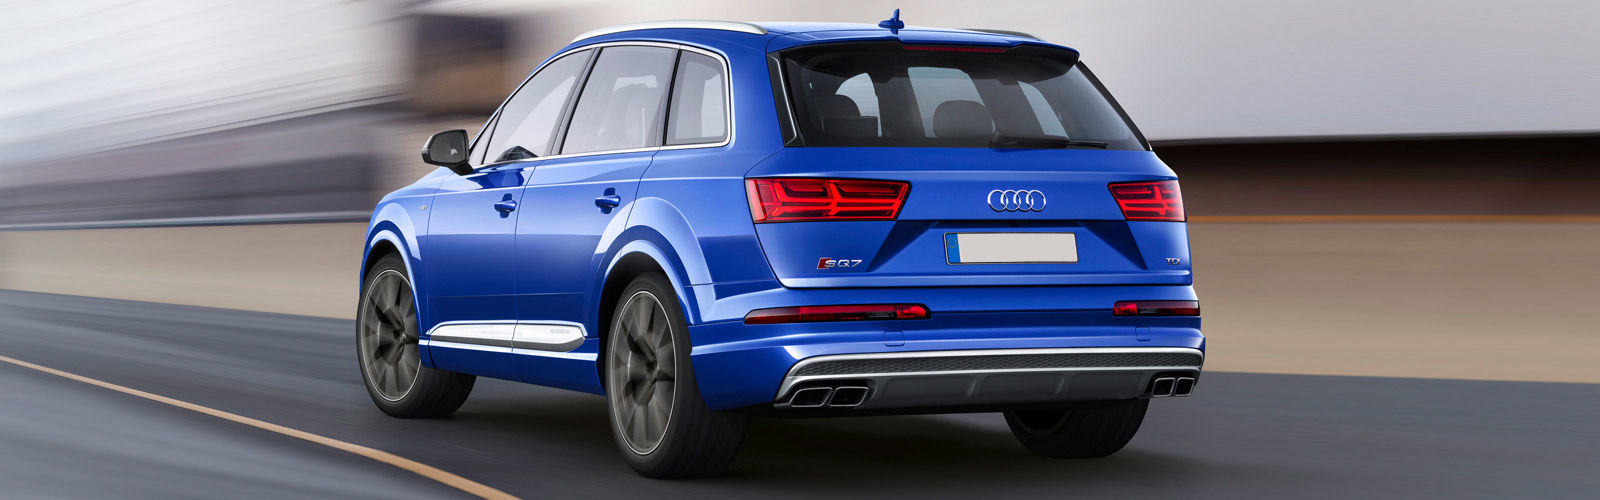 New Audi SQ SUV Price Specs And Release Date Carwow - Audi sq7 price